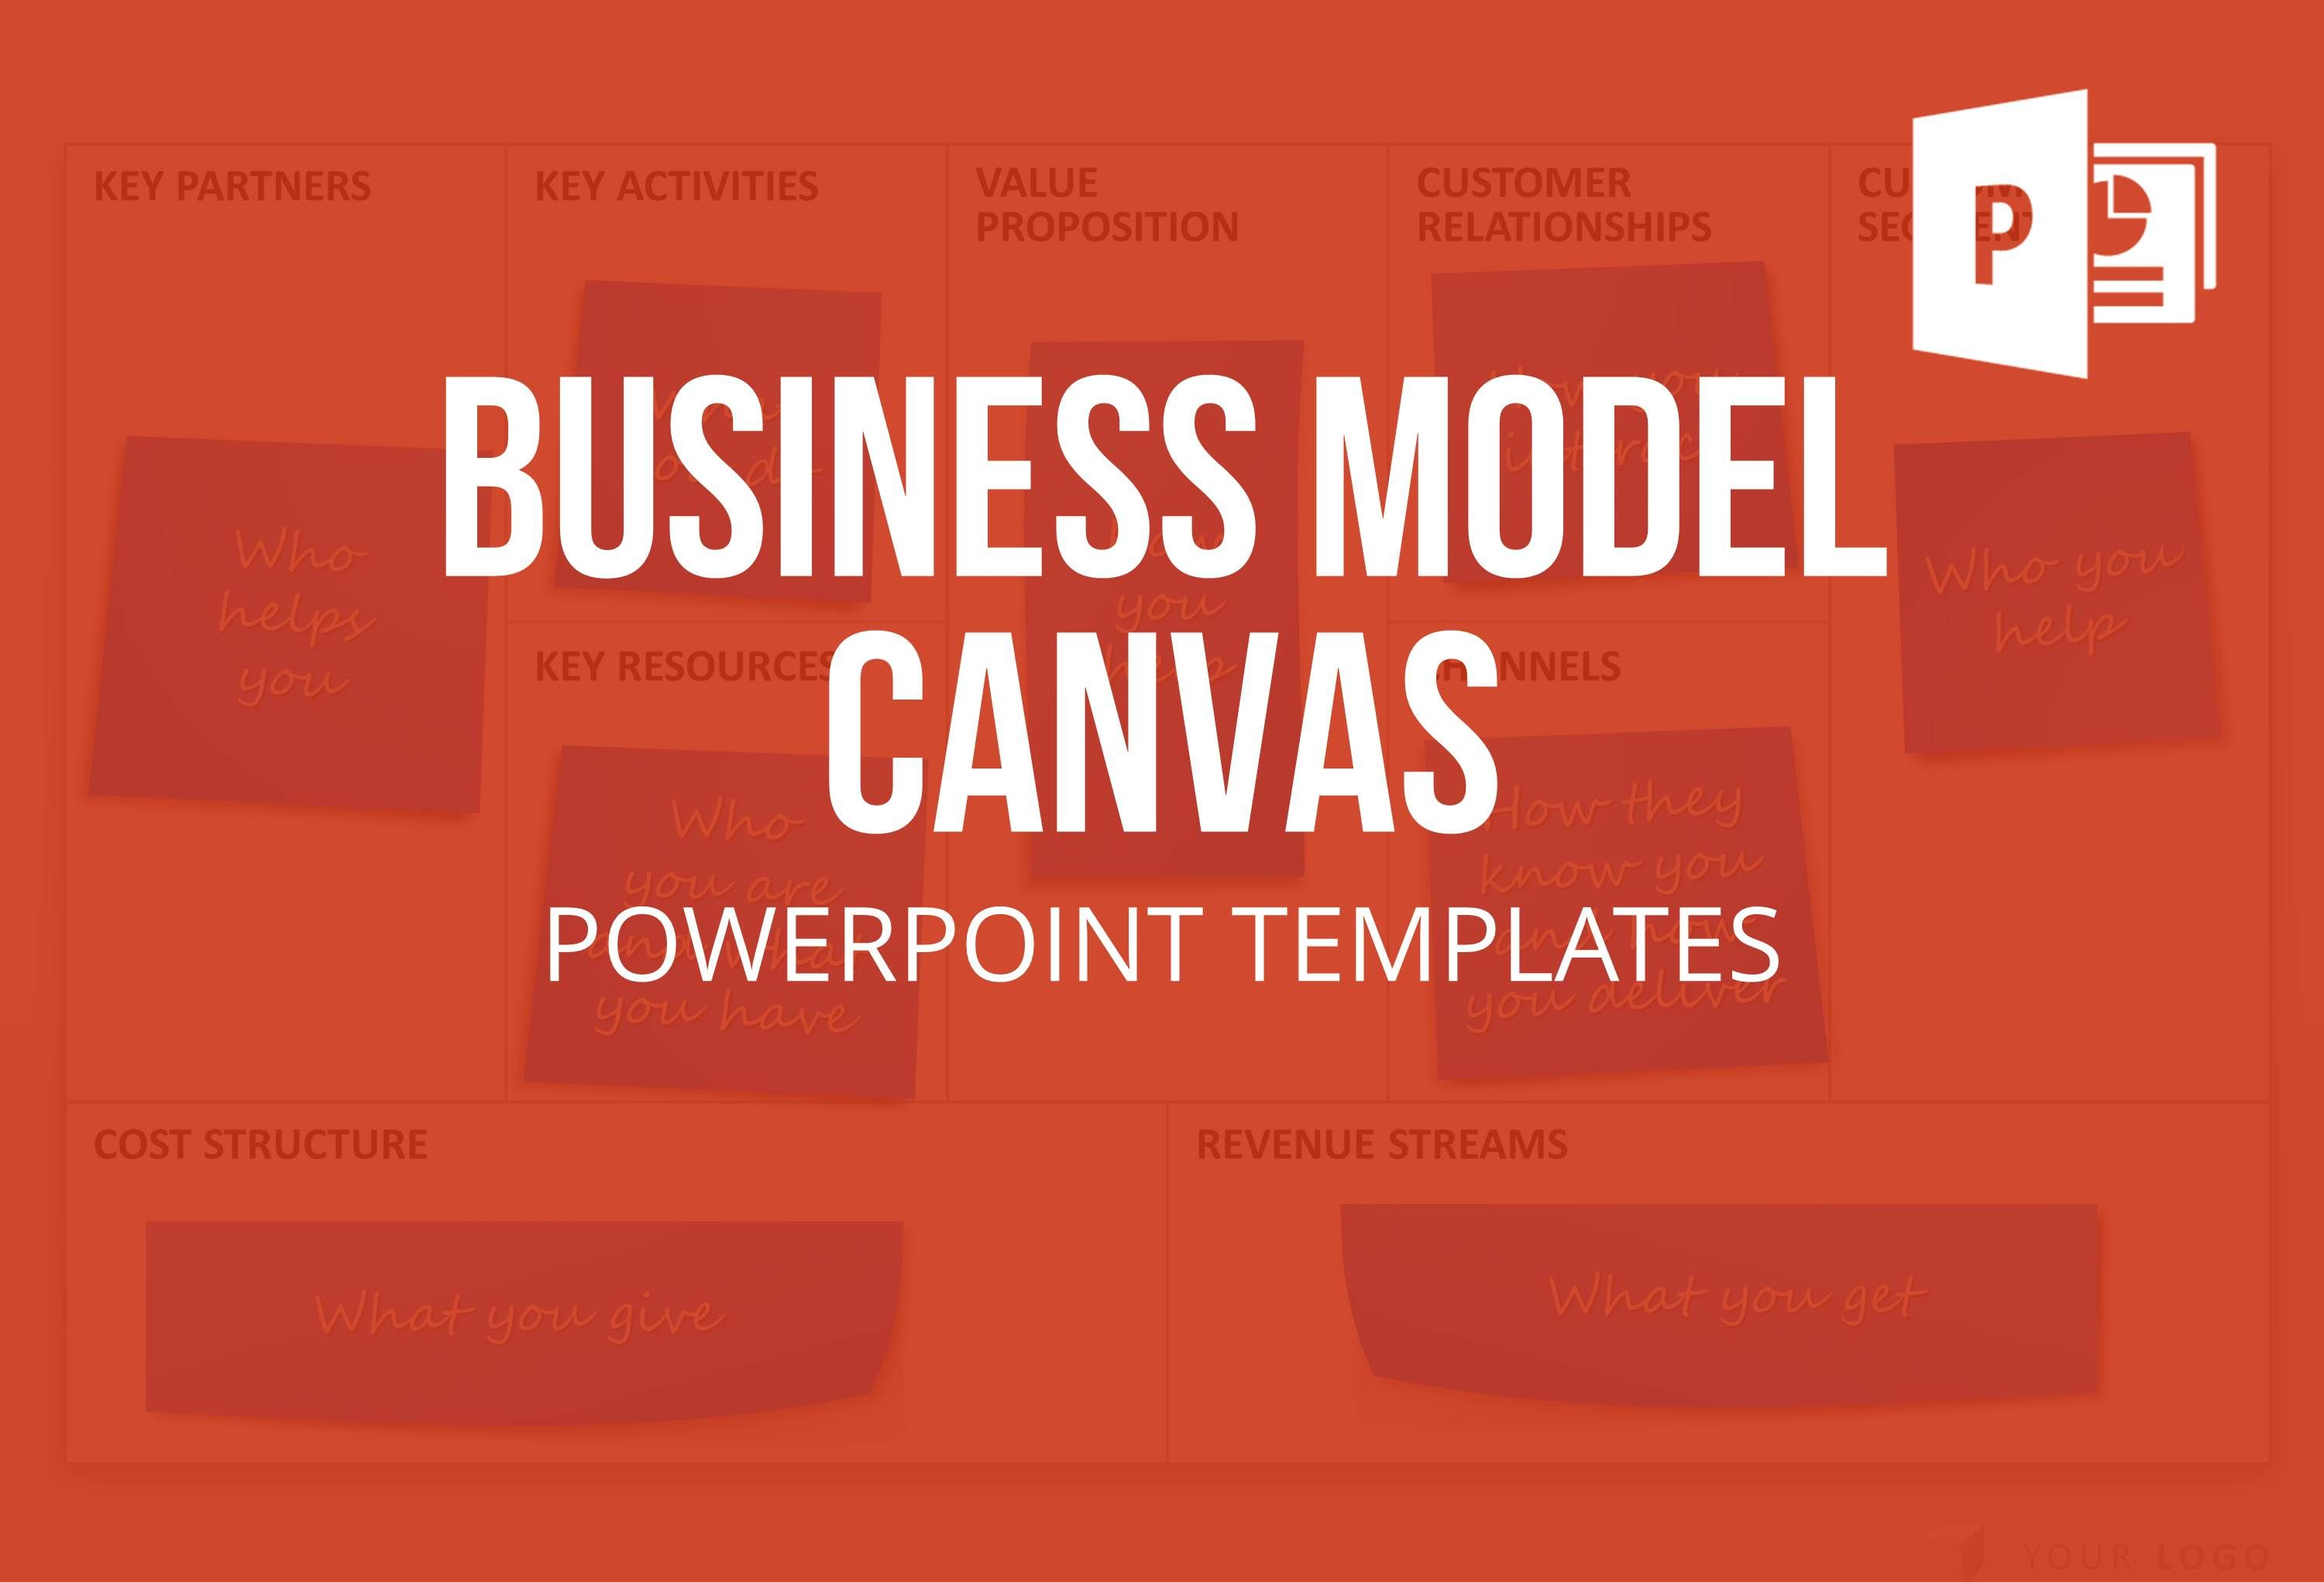 Business model canvas templates bmc for powerpoint for the business model canvas templates bmc for powerpoint for the planning and visualization of the strategic development of new and existing business models fbccfo Choice Image